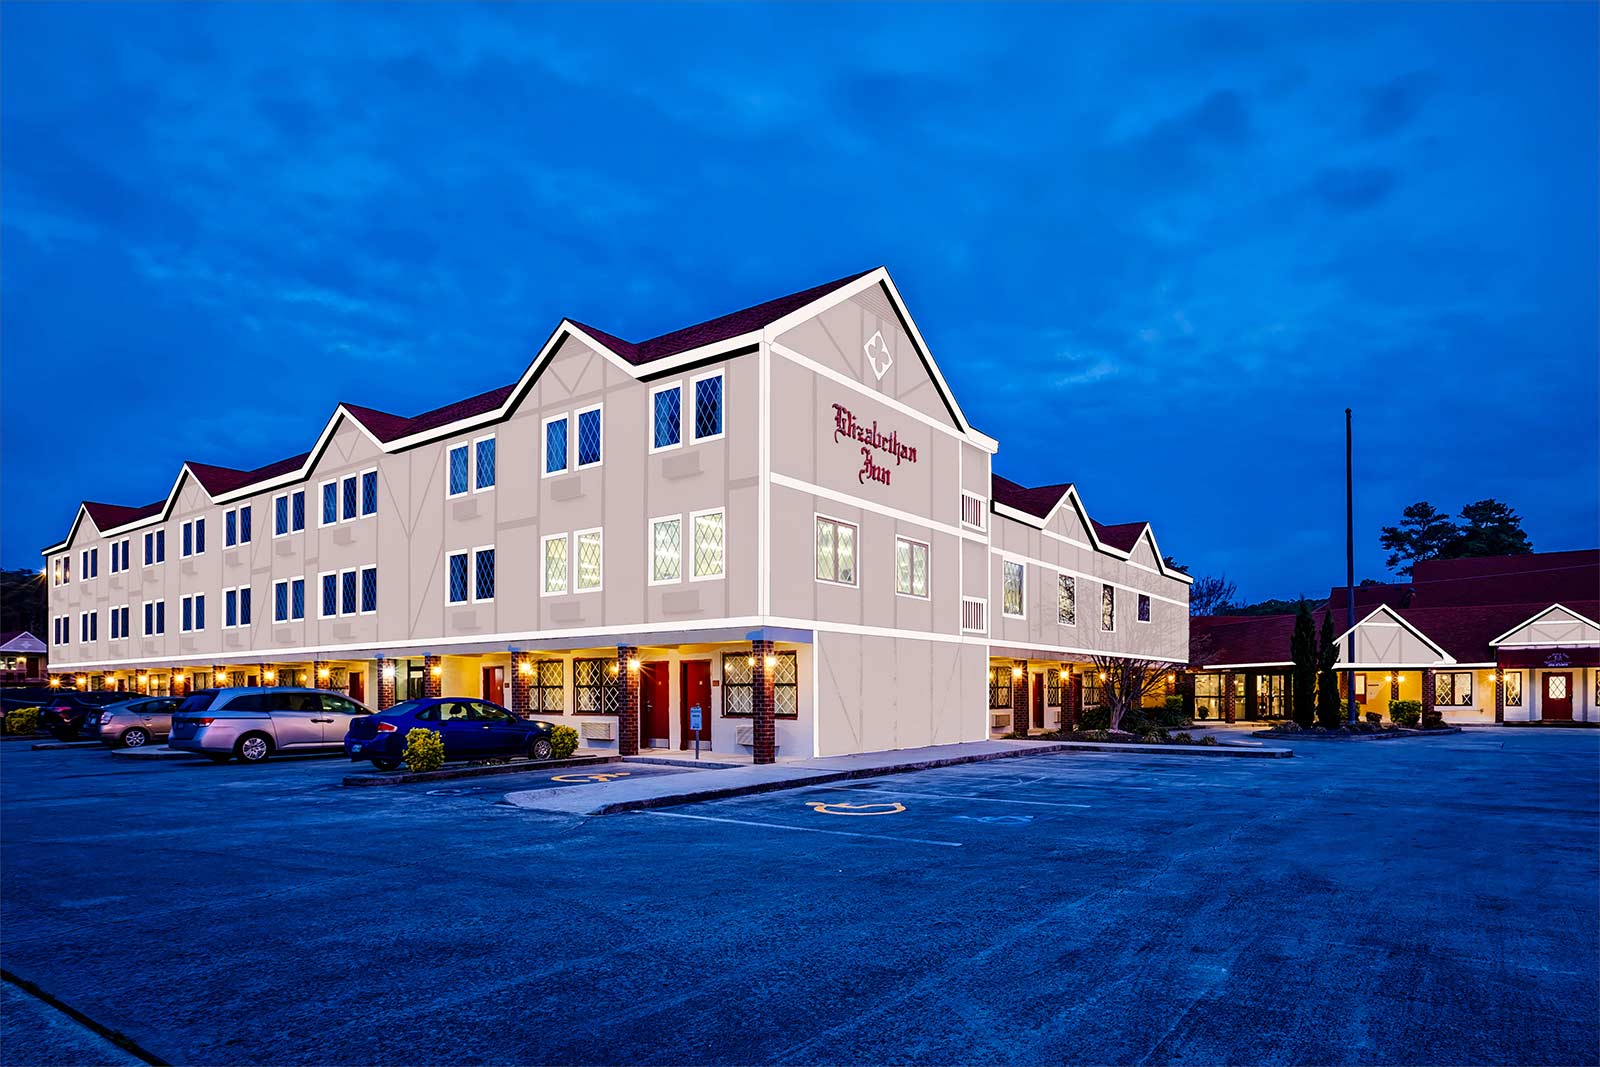 Best Hotels Near Obx Budget Holiday Hotel Manteo Nc Outer Banks